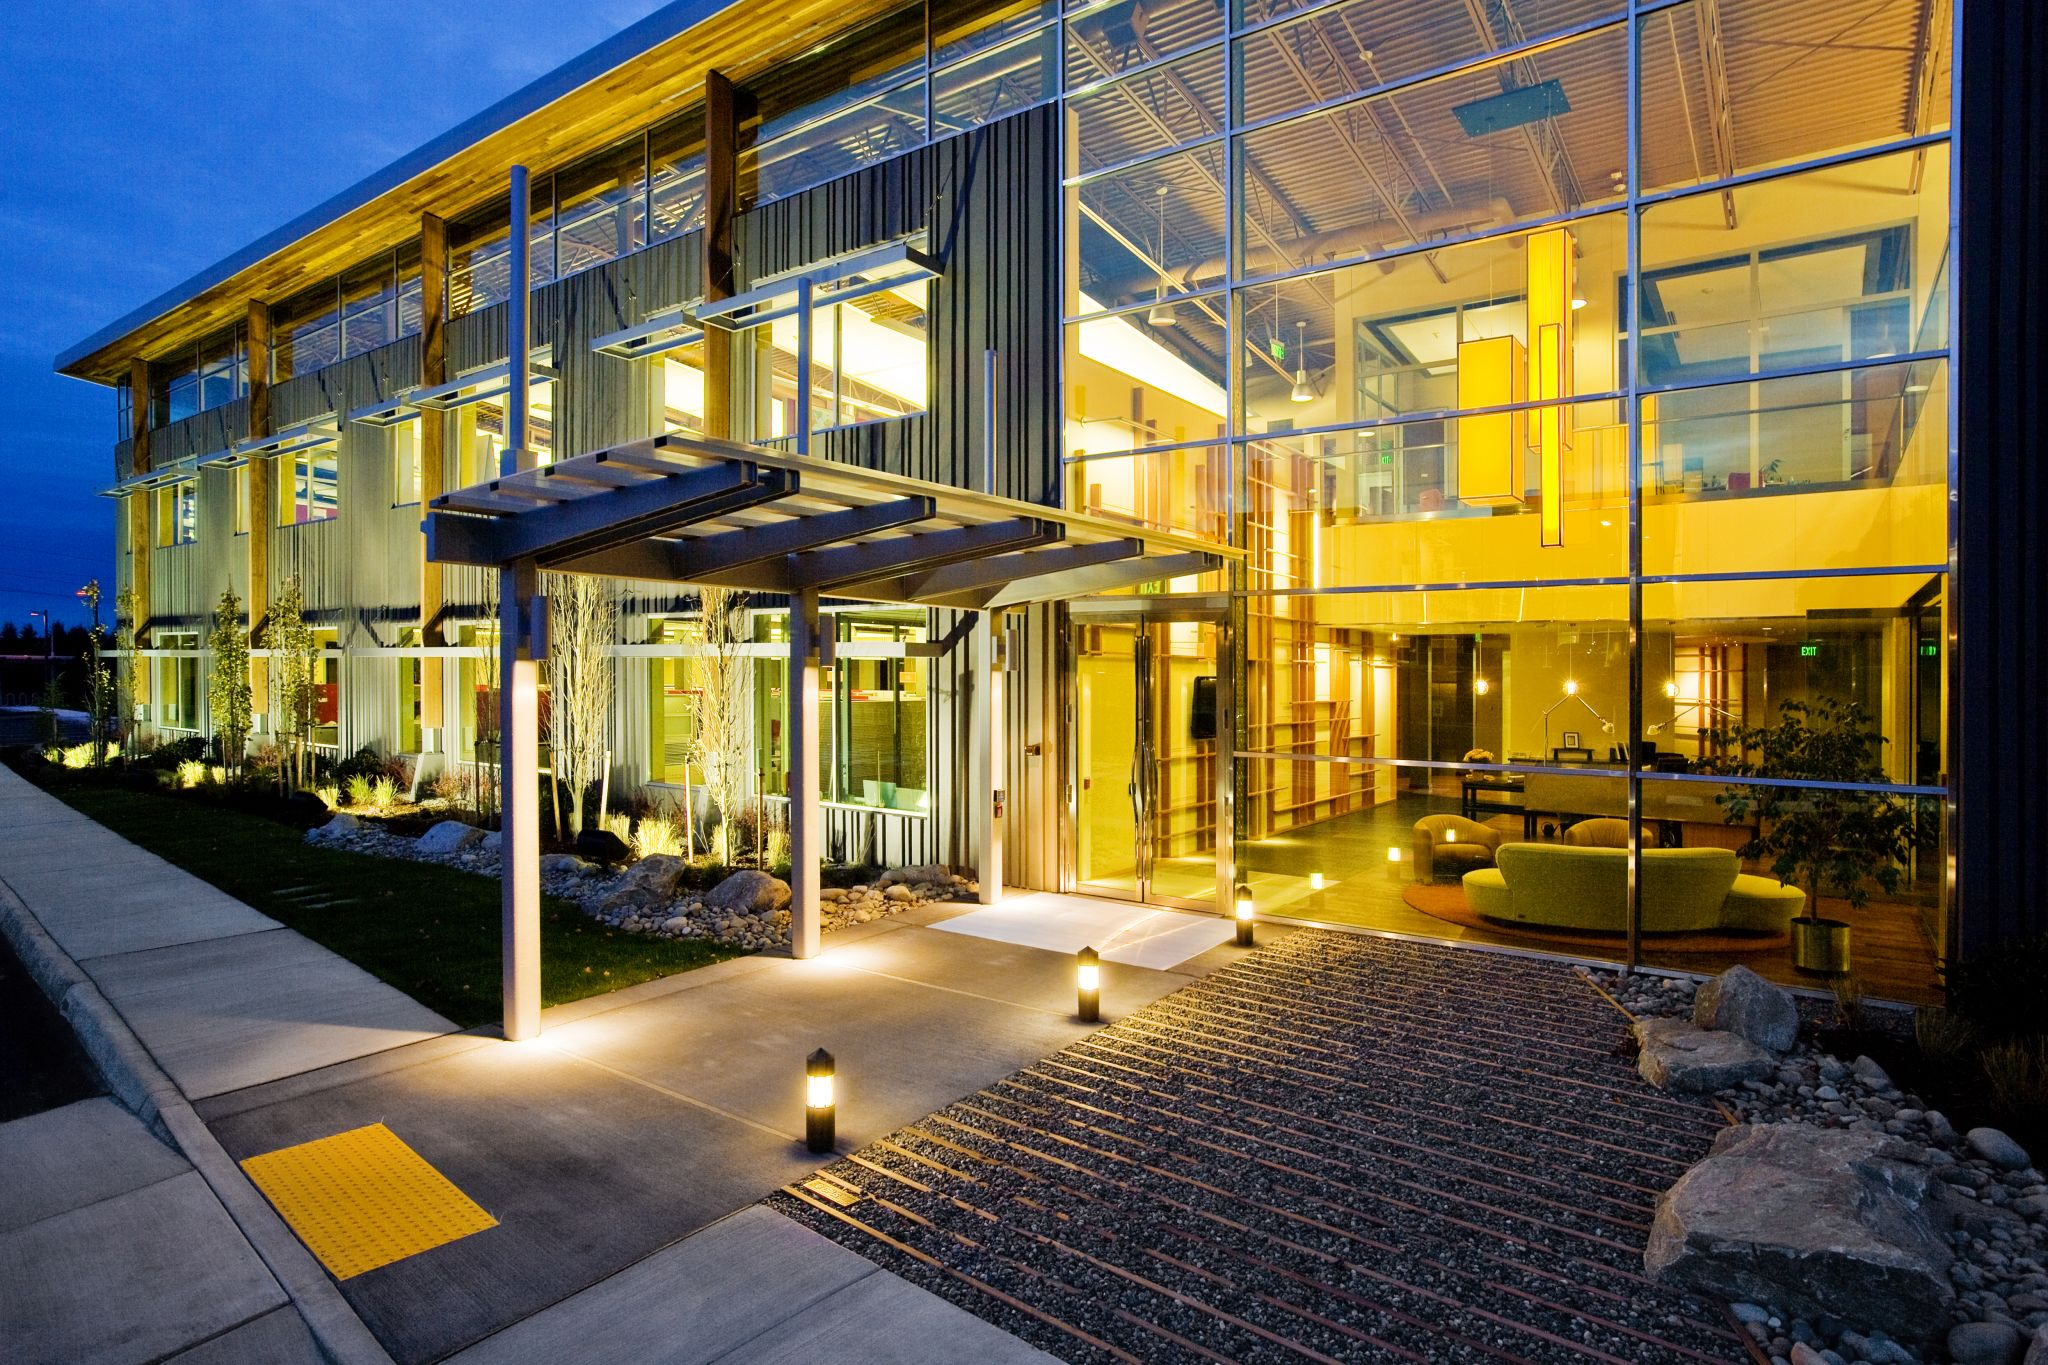 Steel curtain wall frames can support high-performance glazed units to balance natural light admission with energy costs.